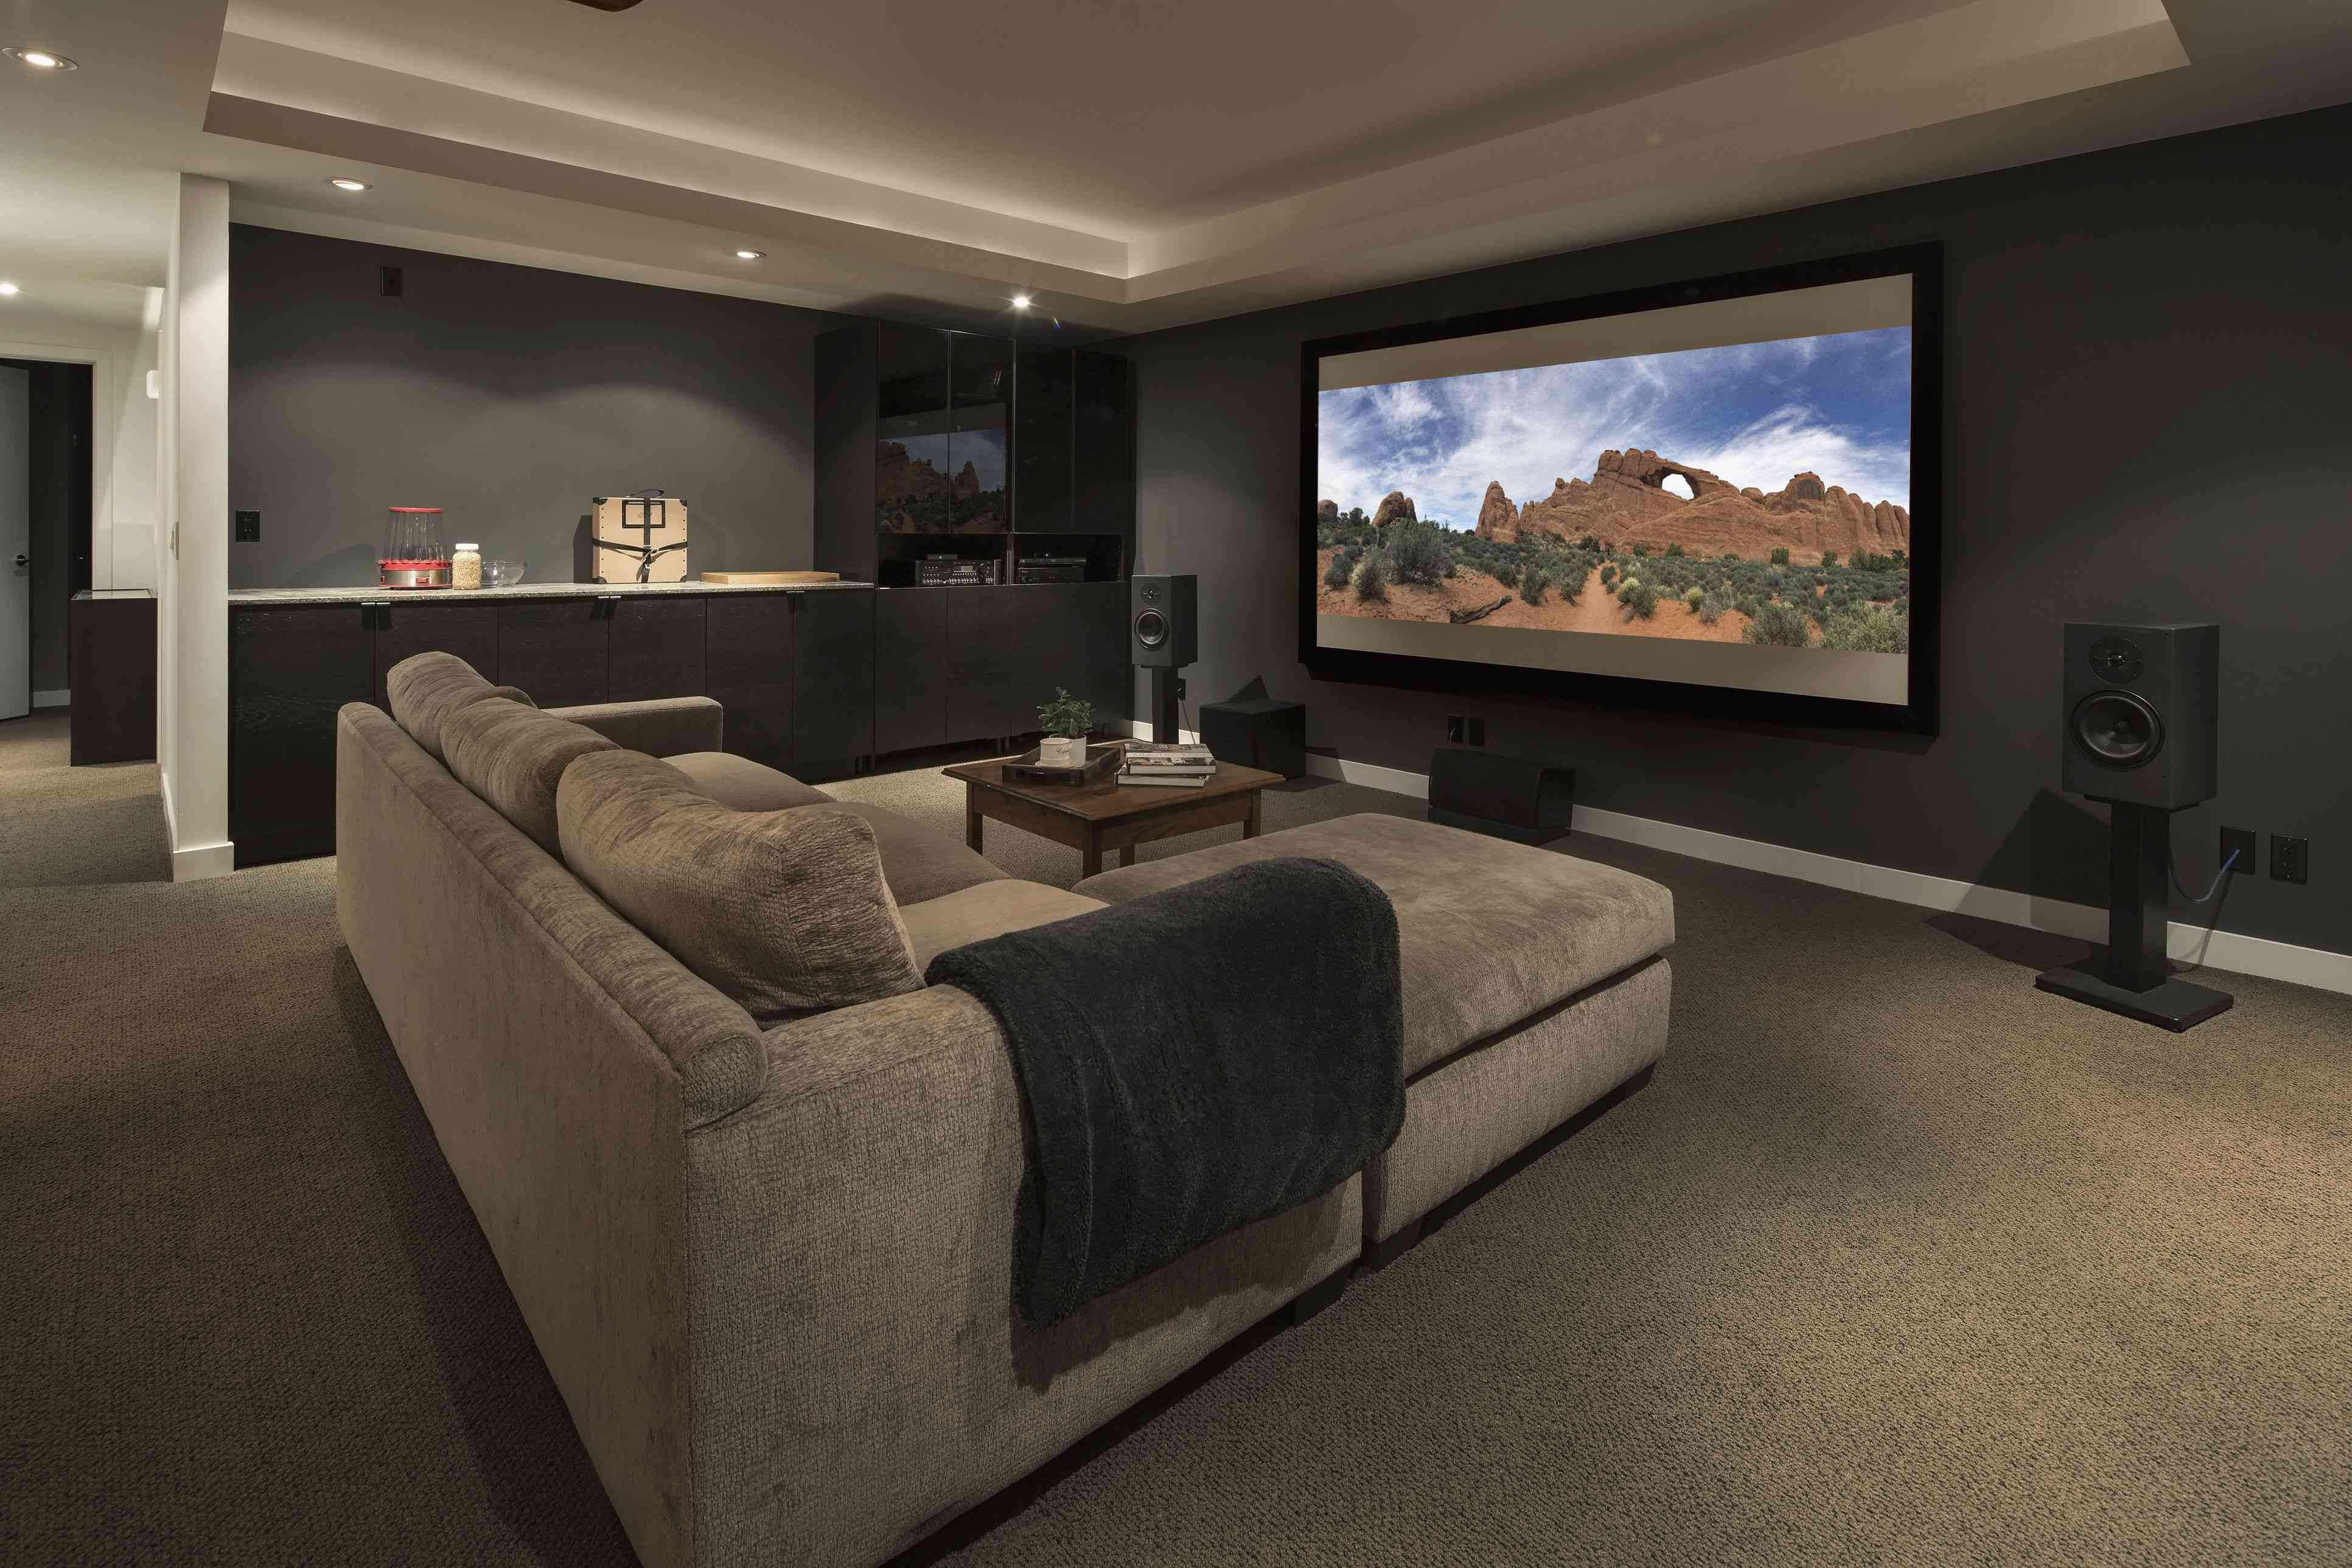 Home theatre automated to play Disney Night.